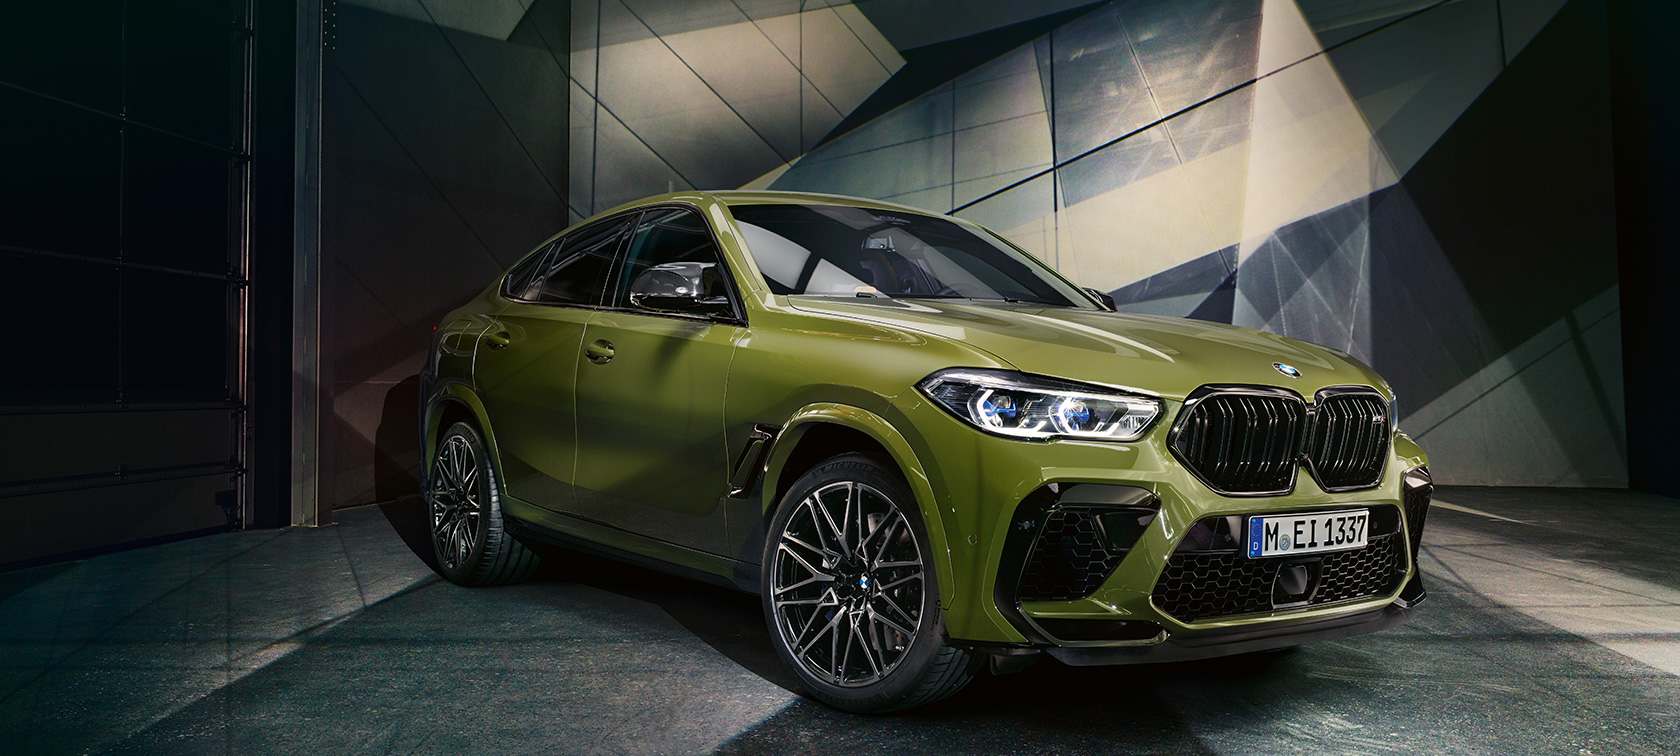 BMW X6 M Competition BMW Individual Special Paint Urban Green SUV F96 2020 side view